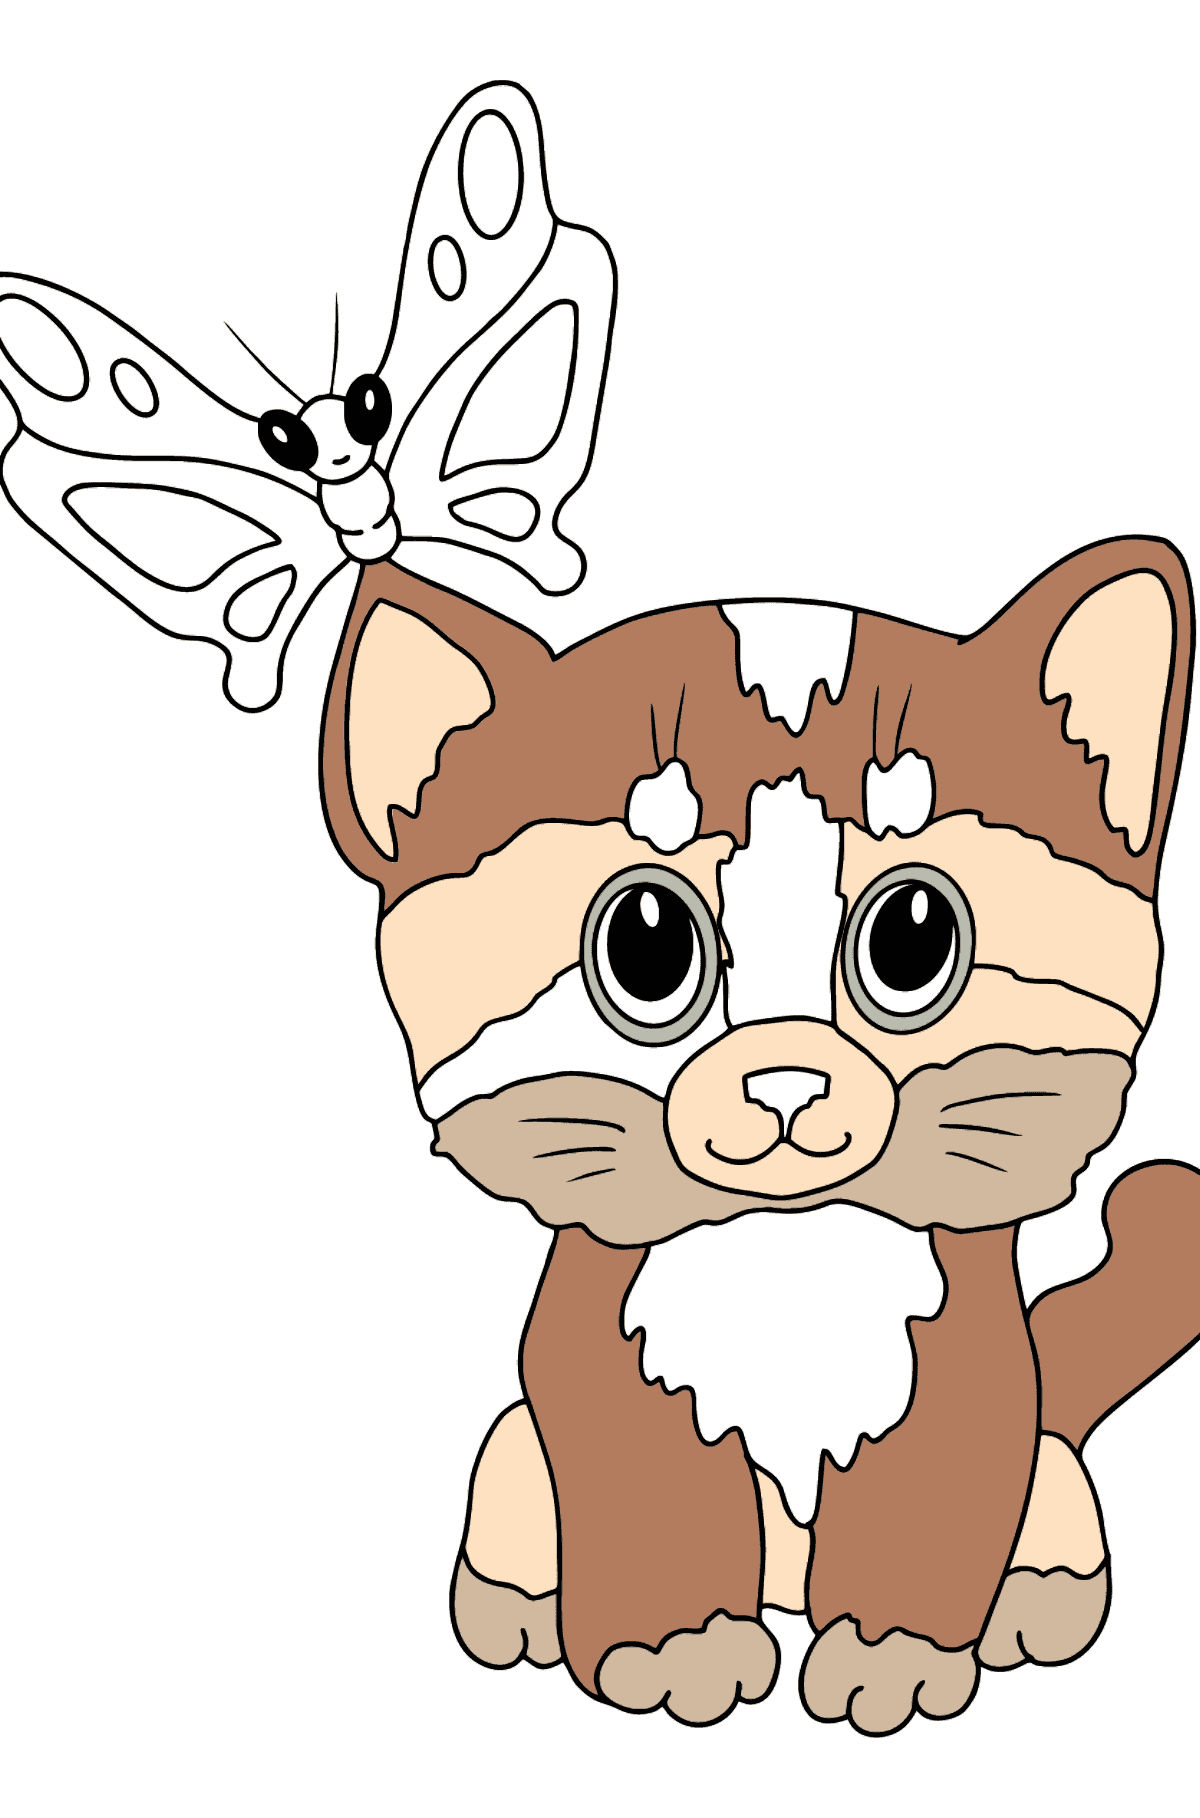 Coloring Page - A Kitten has Caught a Butterfly - Coloring Pages for Kids